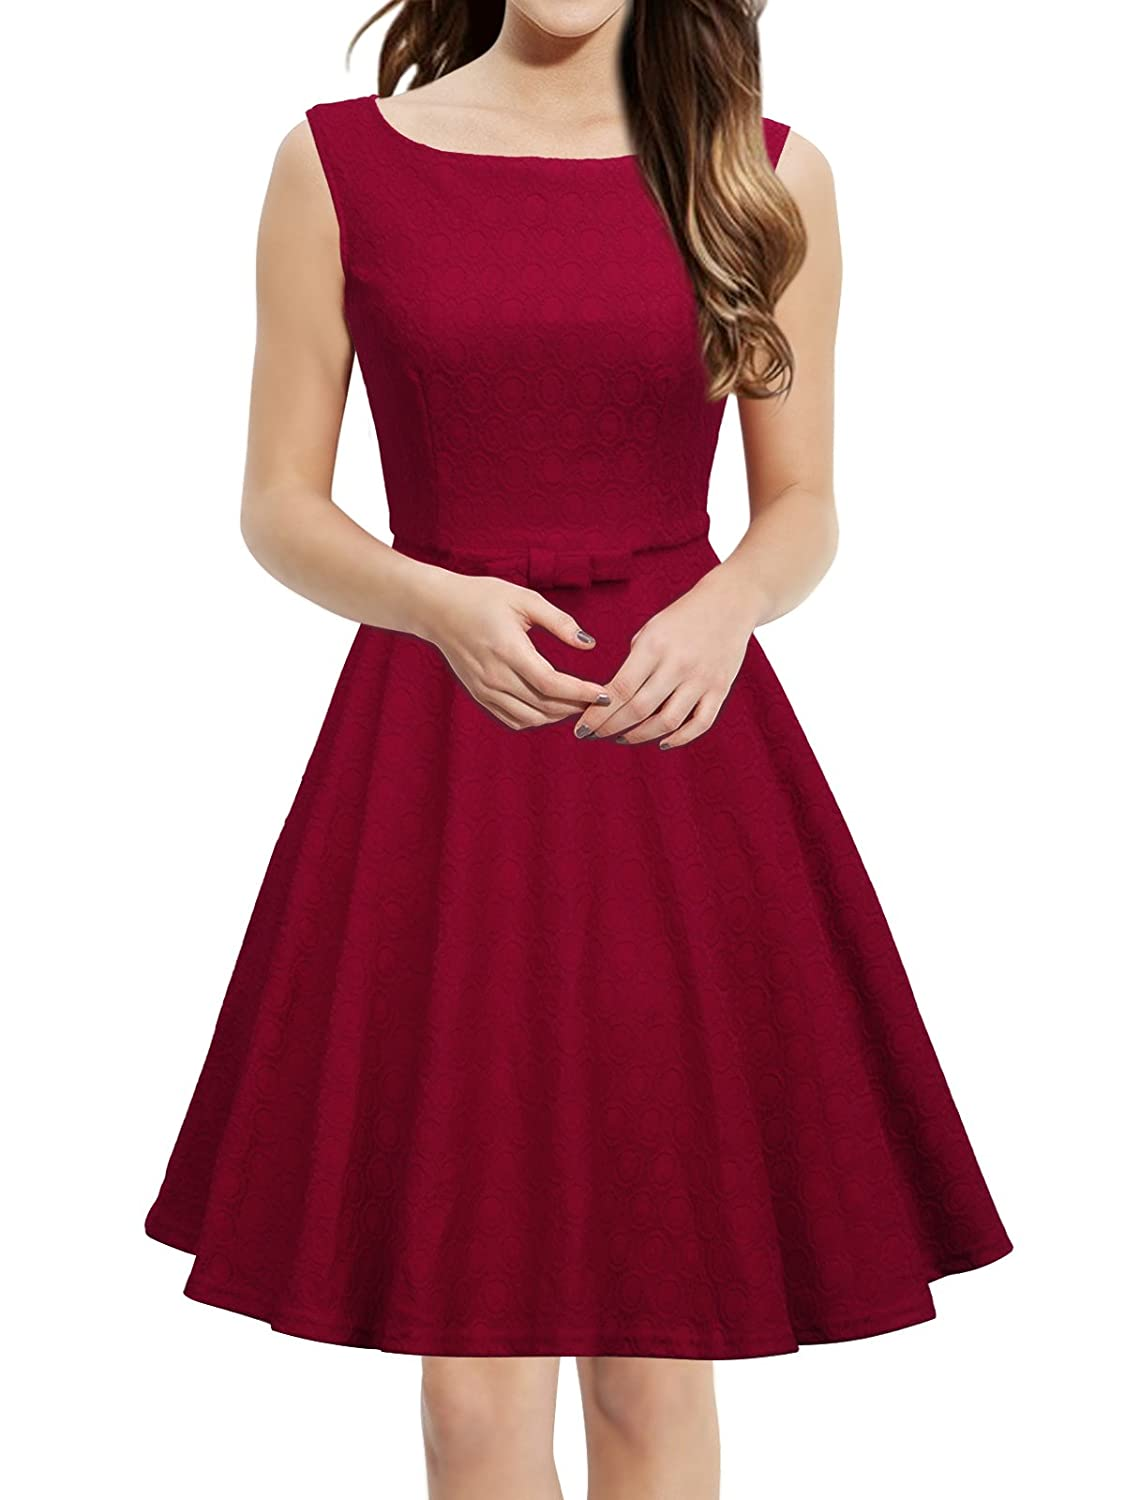 7cad02eaa887 Dresses vary from the size and style. Large Hem. This swing dress has a  really 360 degree full skirt. PLEASE SEE THE SIZE CHART OF EACH DRESS IN  THE ...